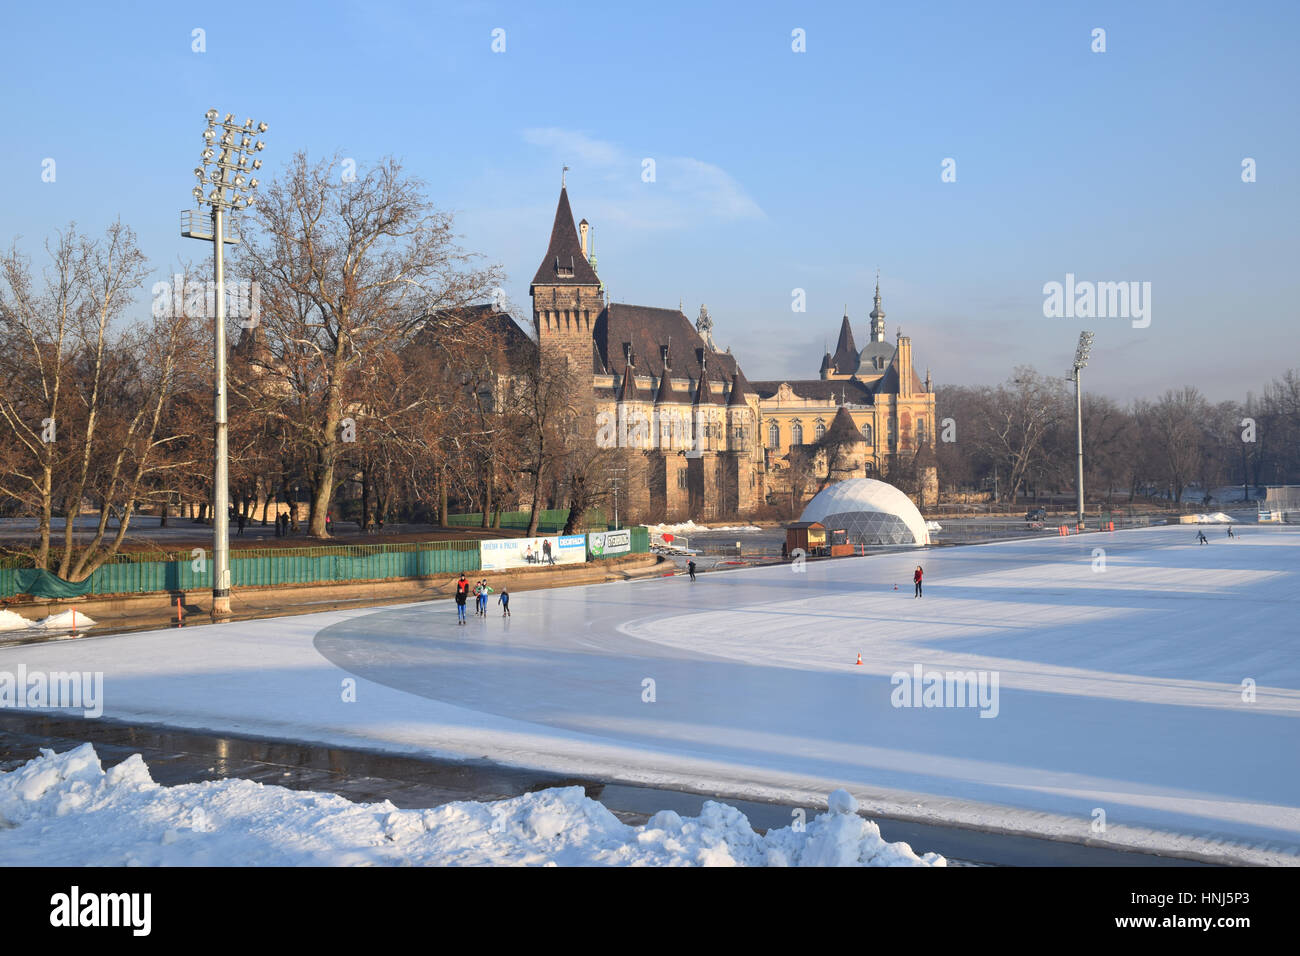 Vajdahunyad Castle, home of Hungarian Agriculture Museum, in City Park, Budapest, Hungary. The lake in front freezes - Stock Image